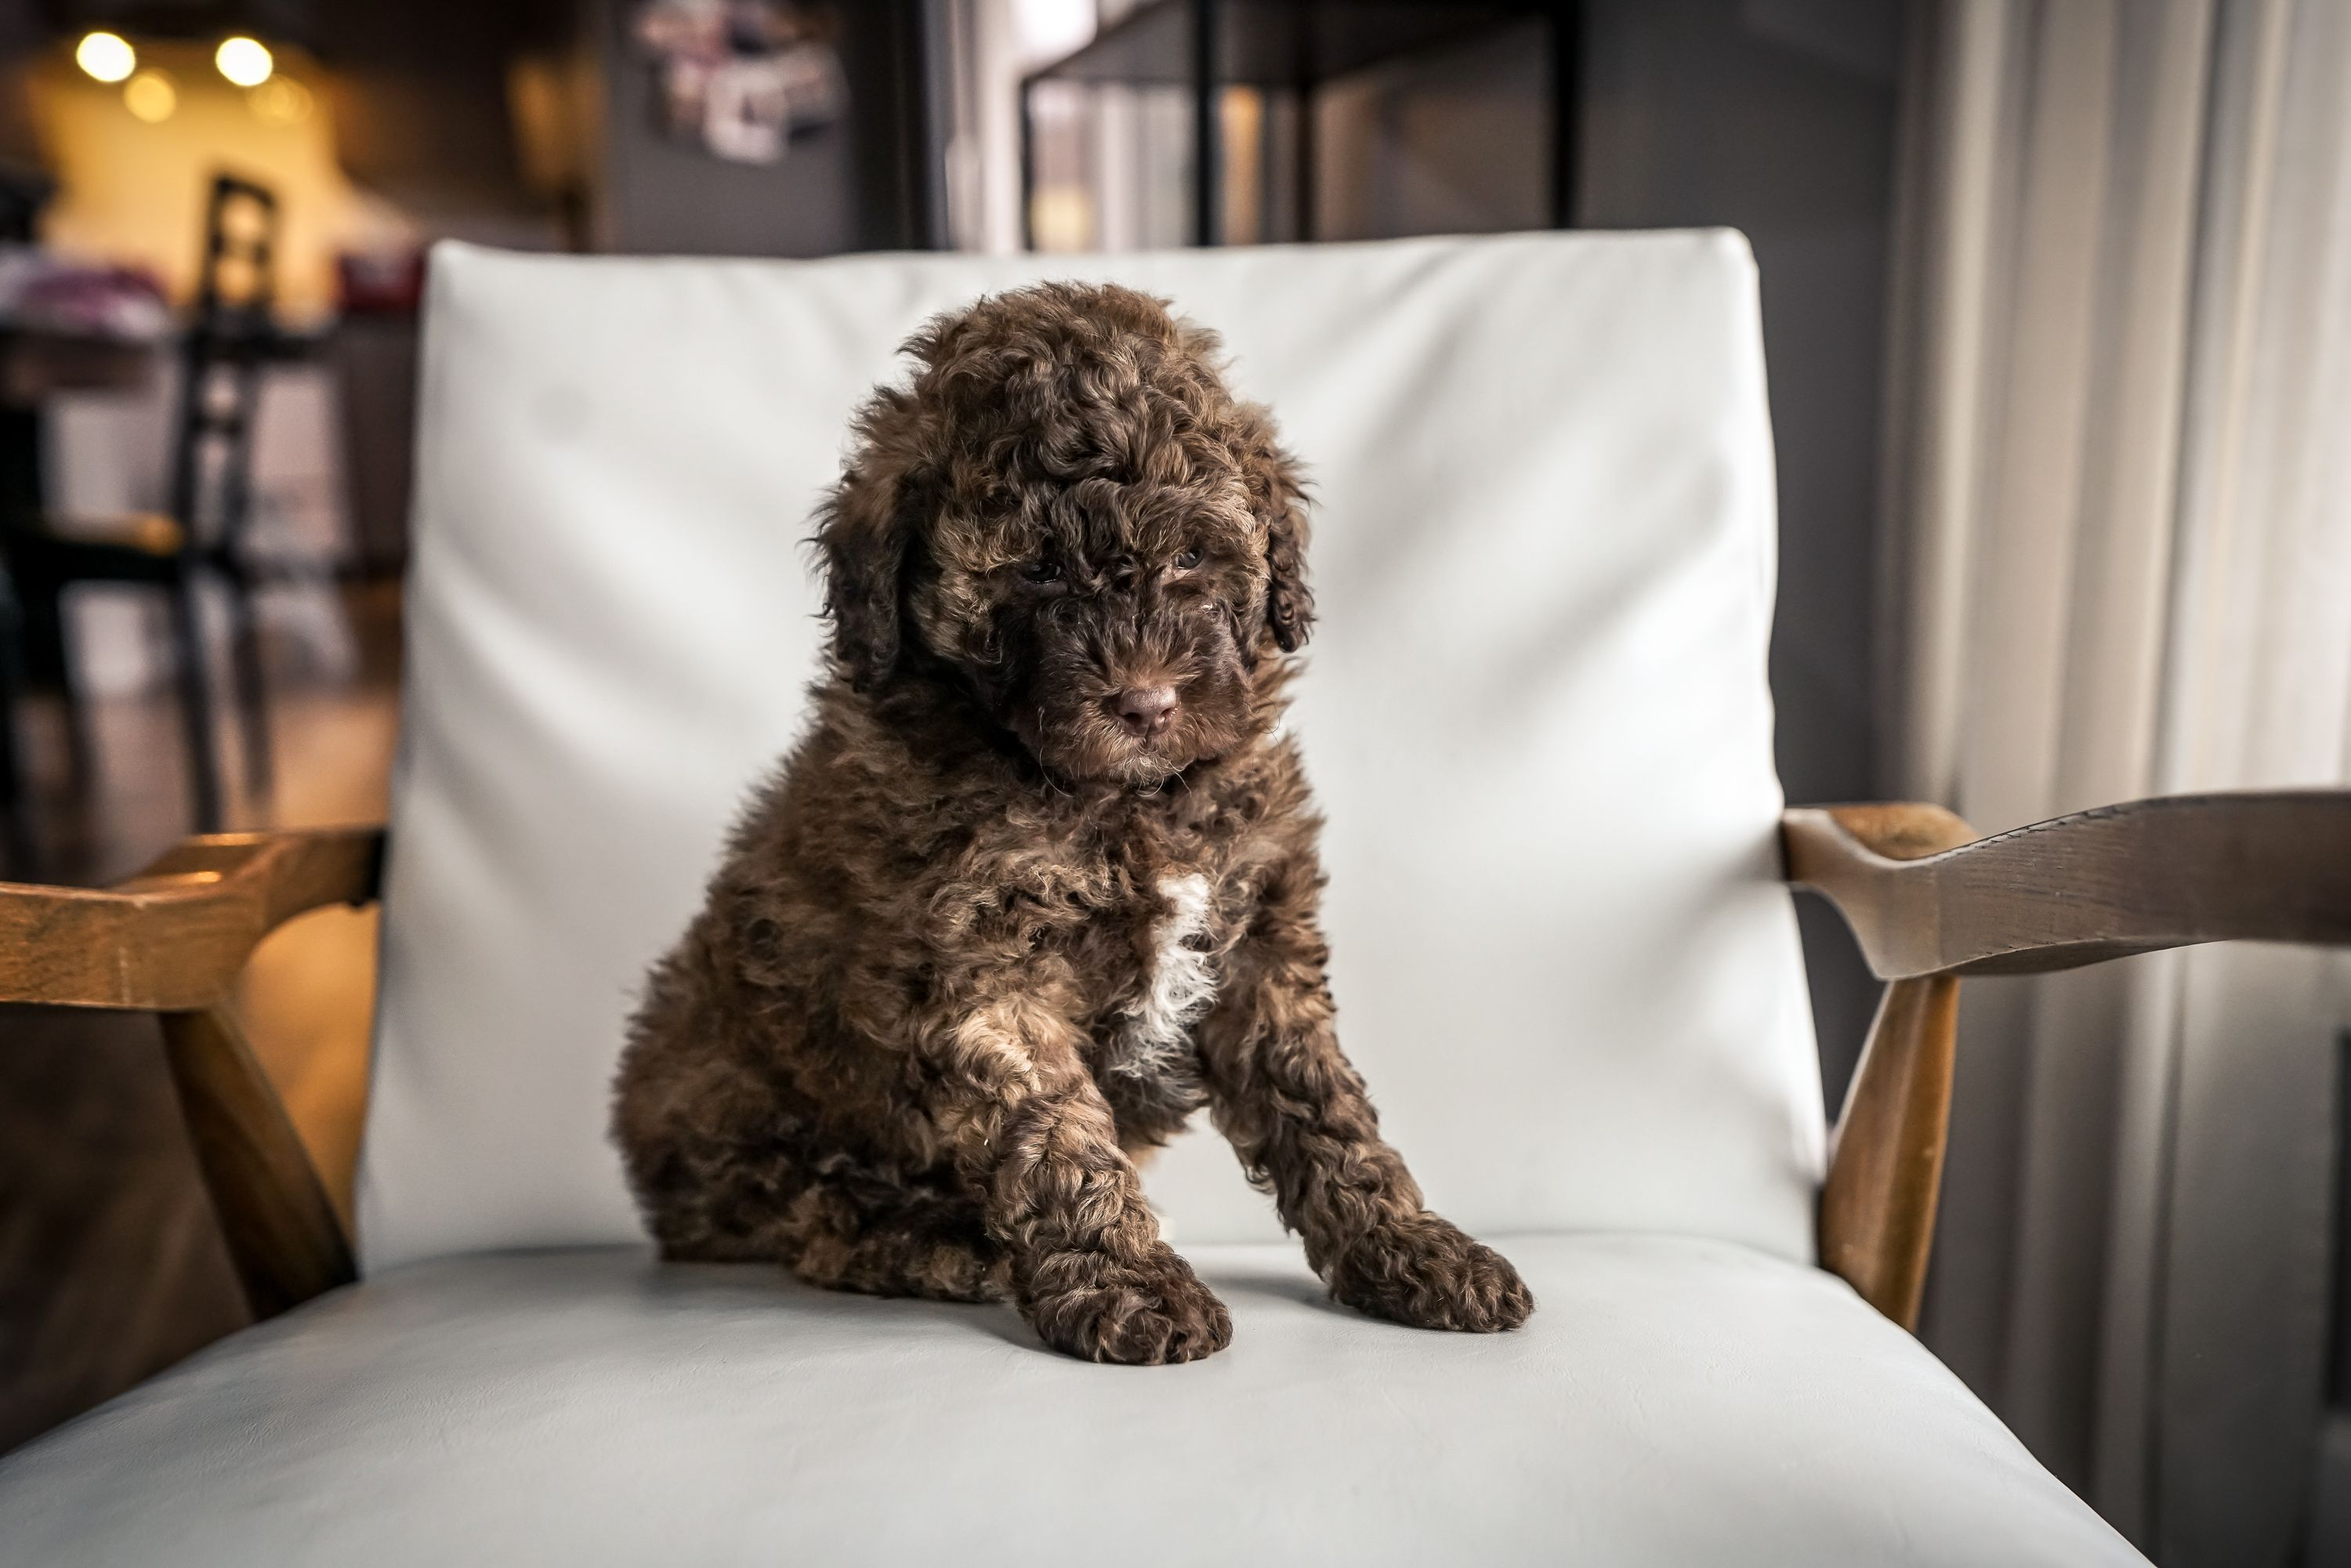 Hershey Male Mini Portidoodle Pup For Sale Near Sugarcreek Ohio In 2020 Puppies For Sale Mini Puppies Puppies